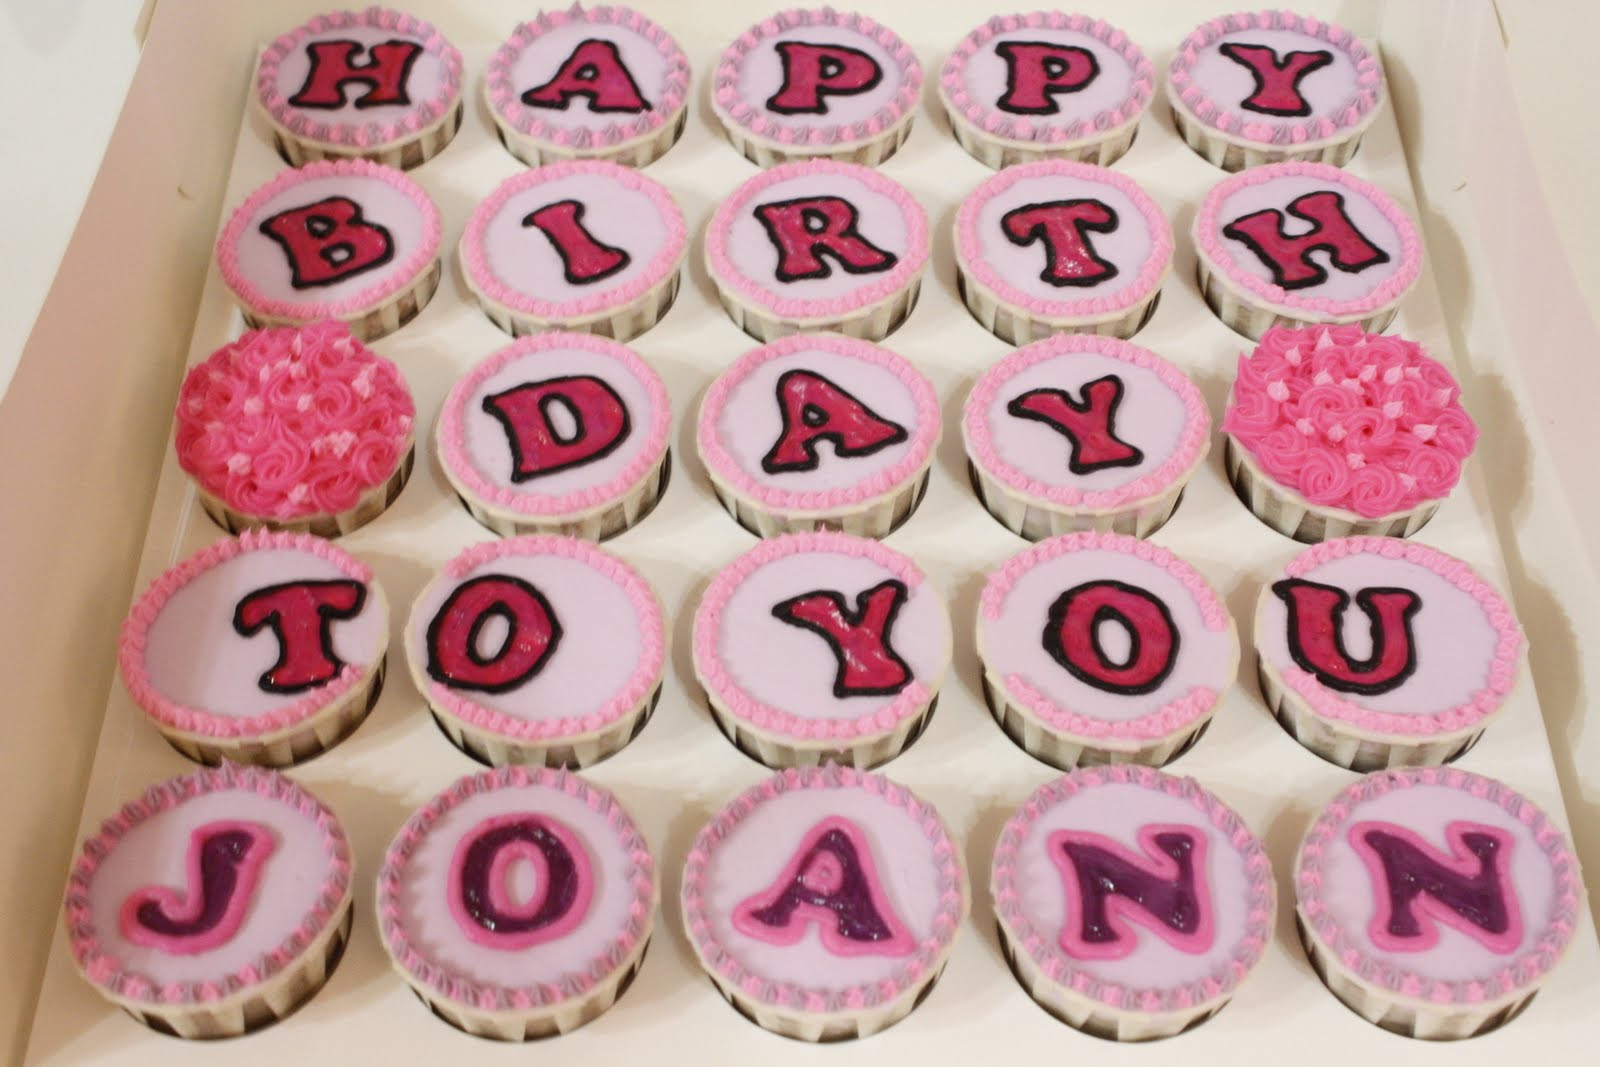 happy birthday joann Lil'bite Bakery: Happy Birthday To You Joann! happy birthday joann